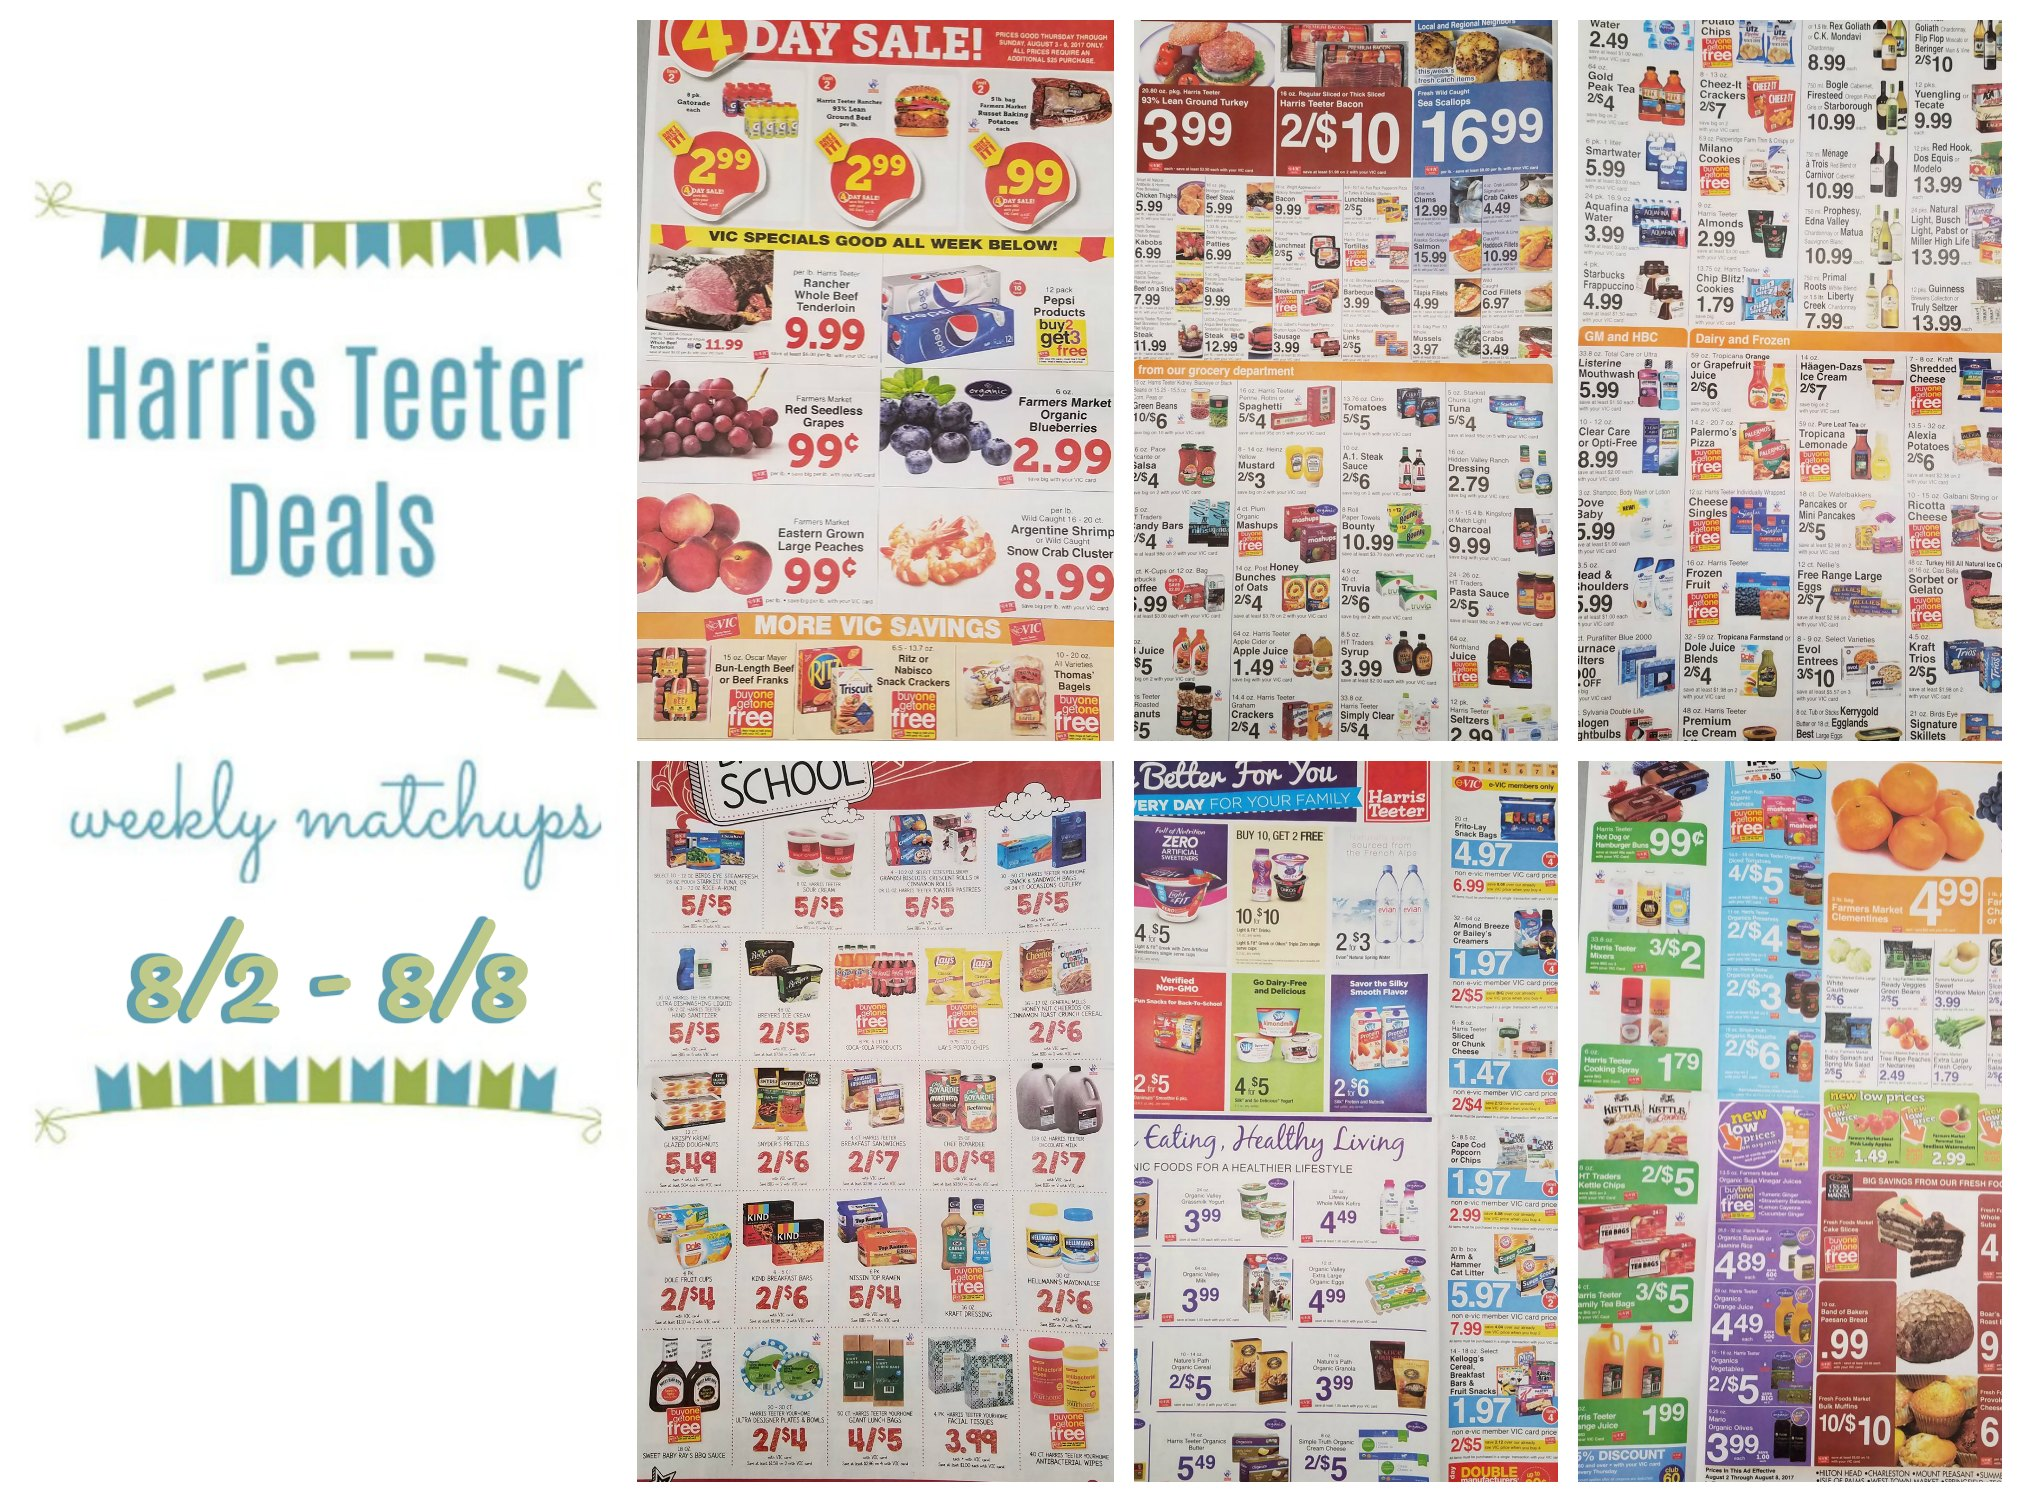 Weekly Matchup List Archives Page 10 of 28 The Harris Teeter Deals